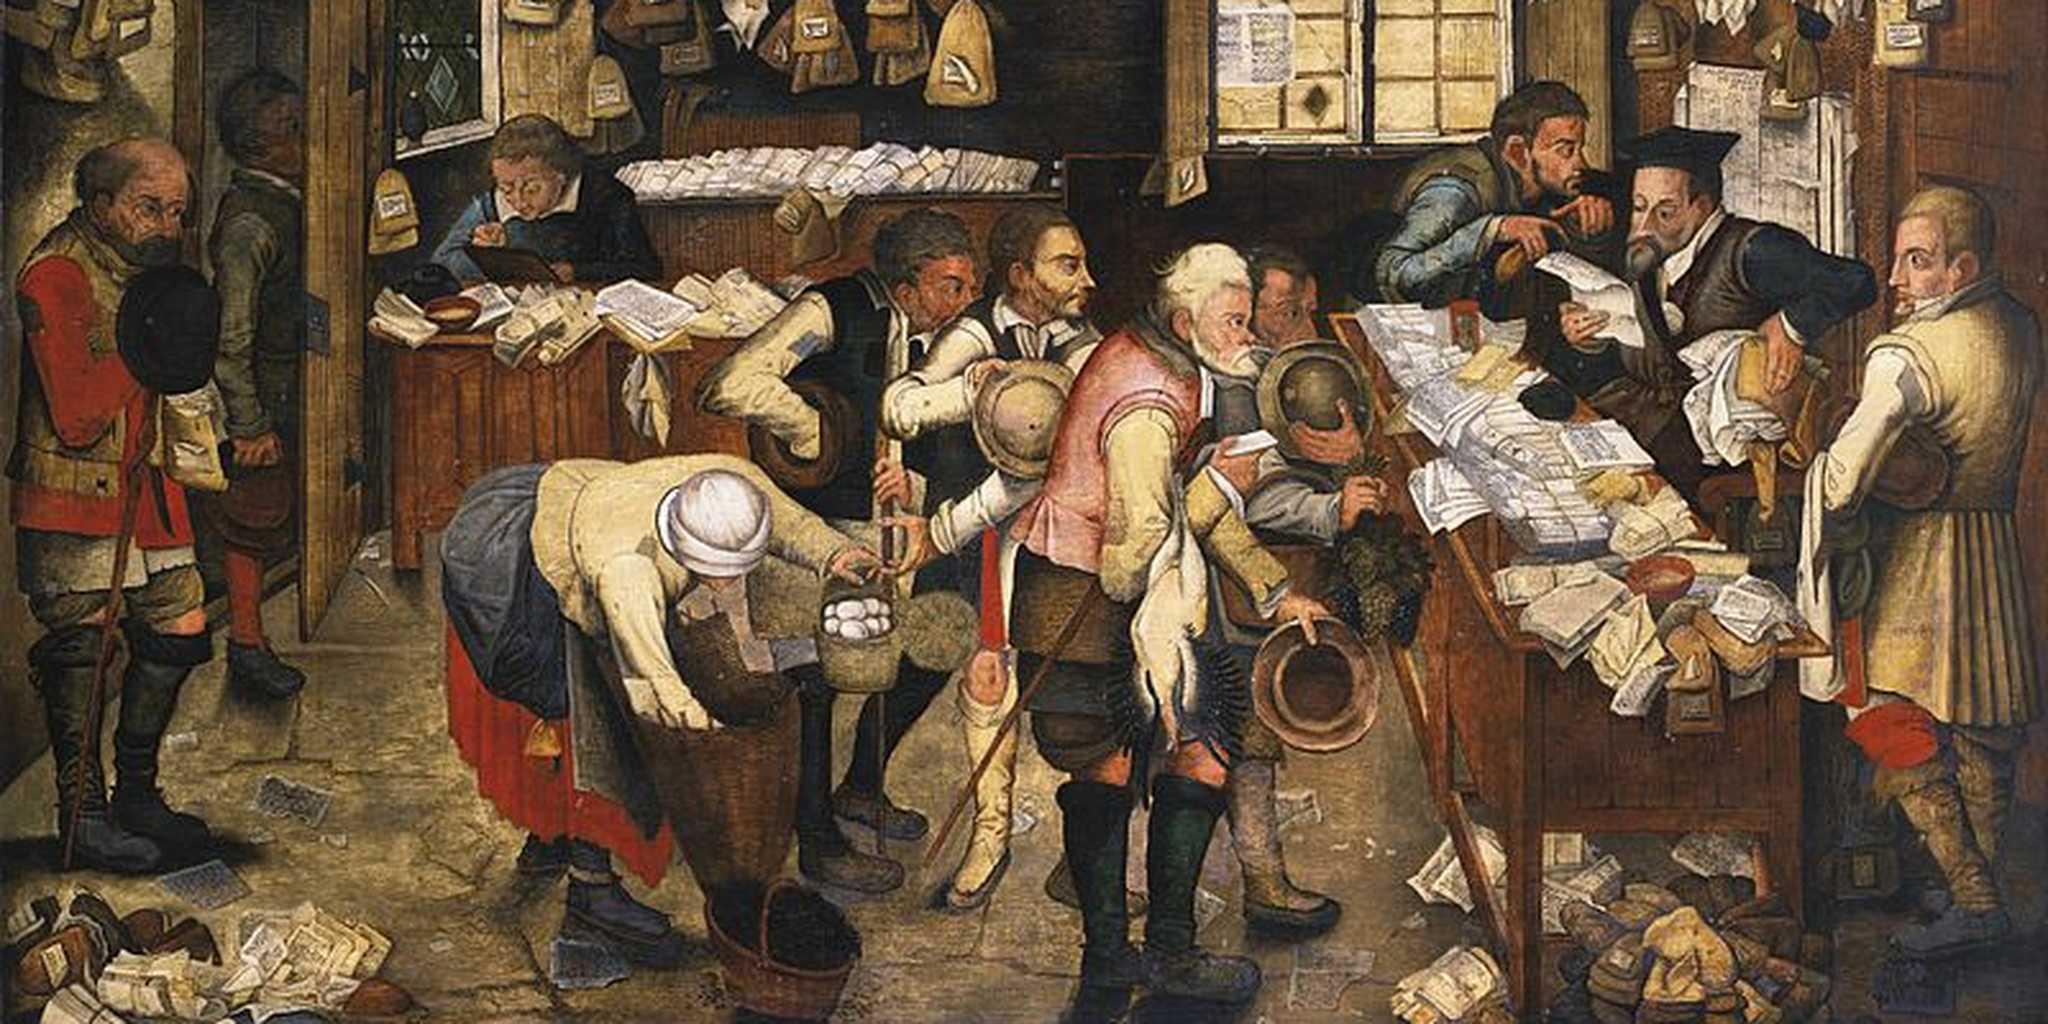 File:Pieter Brueghel the Younger - The Village Lawyer's office.jpg - Wikimedia Commons